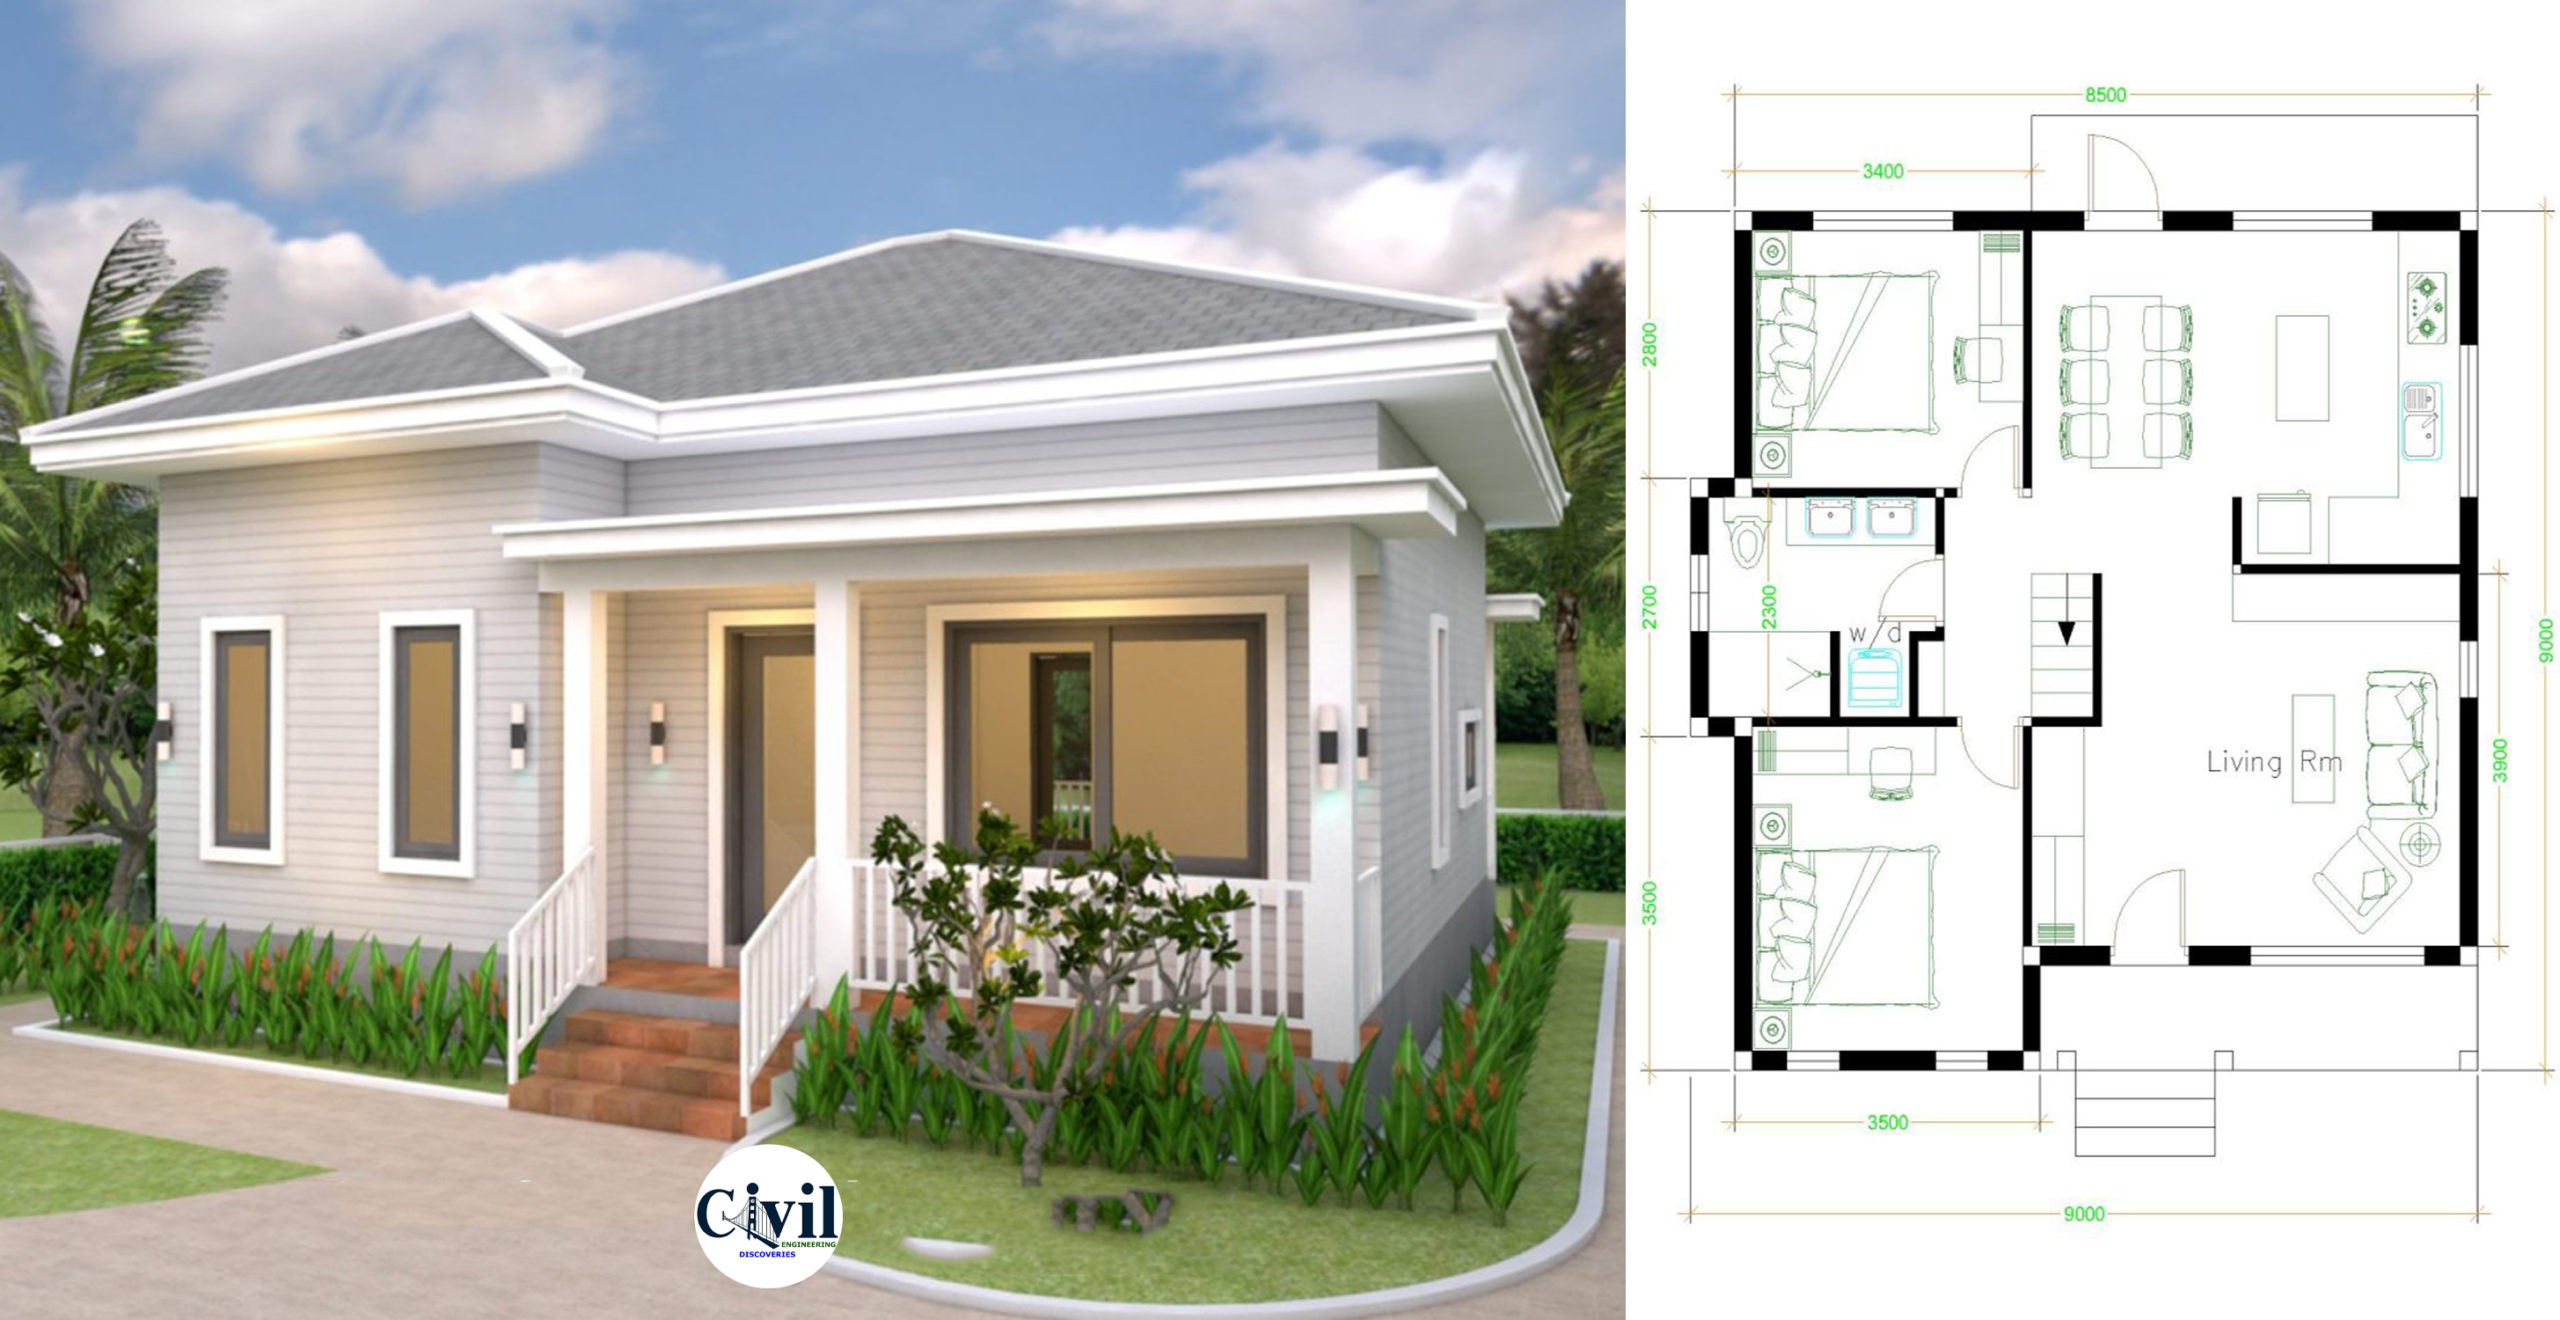 House Plans 9 9 With 2 Bedrooms Hip Roof Engineering Discoveries